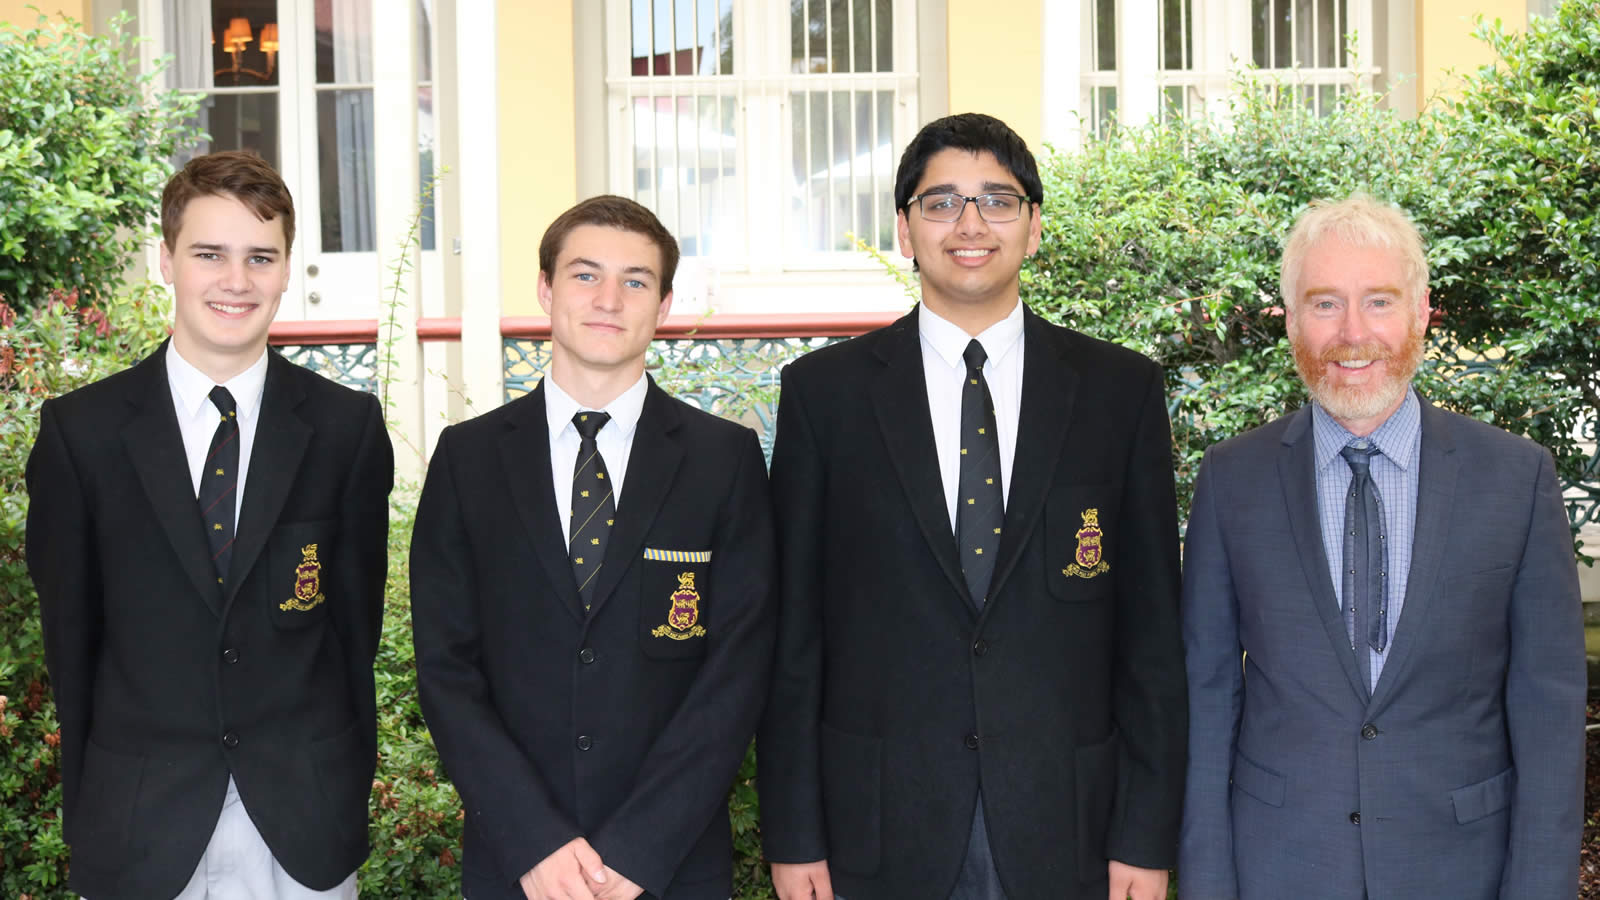 Year 10 students Brendan Heatley-Hart, Raiden Lemon, Sudhaunshu Hardikar and Mr Peter Crofts (Head of Faculty)